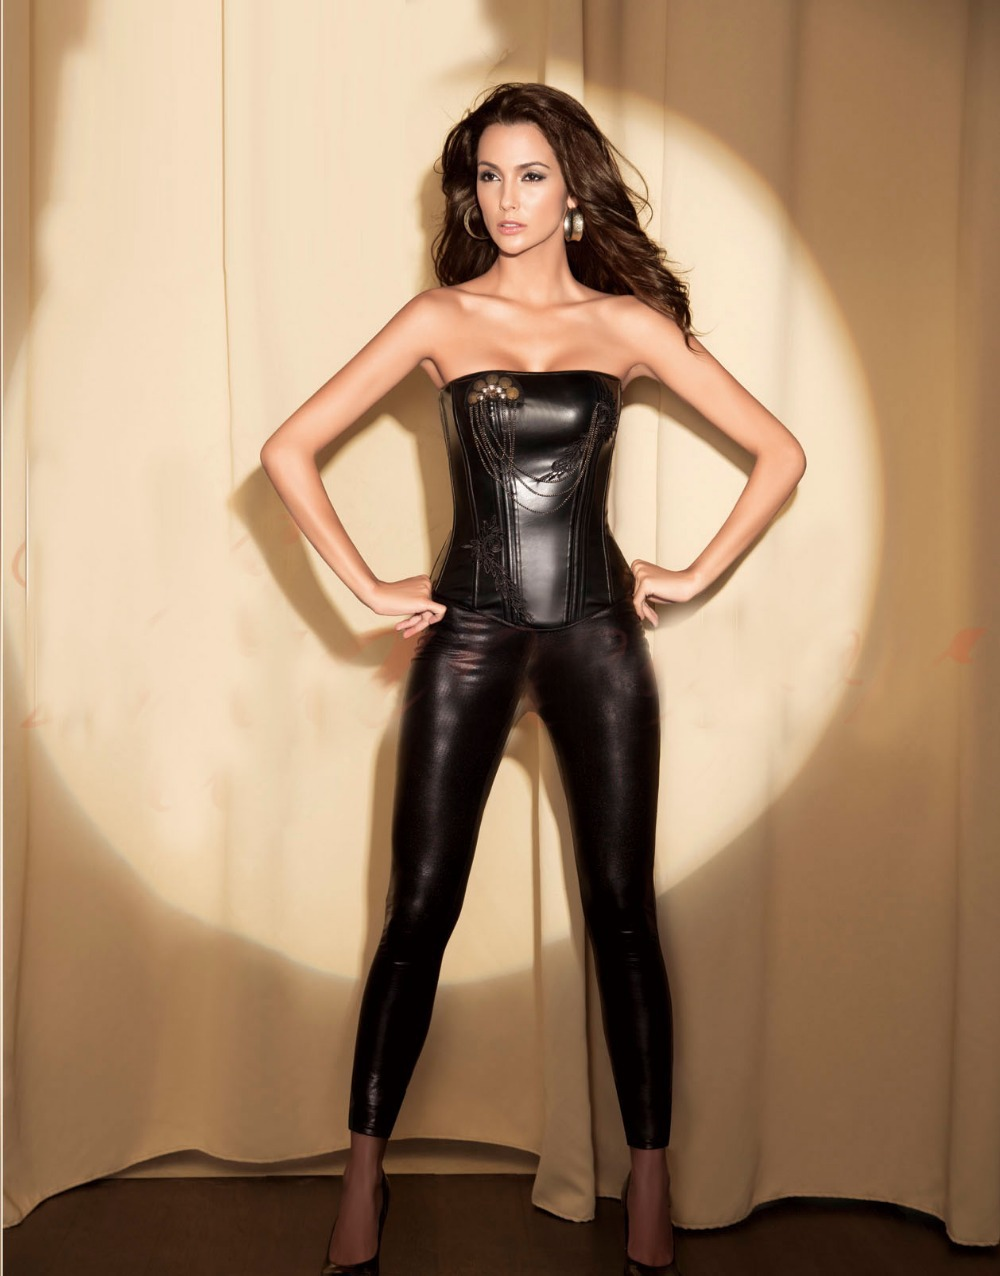 Girls in leather corsets intolerable